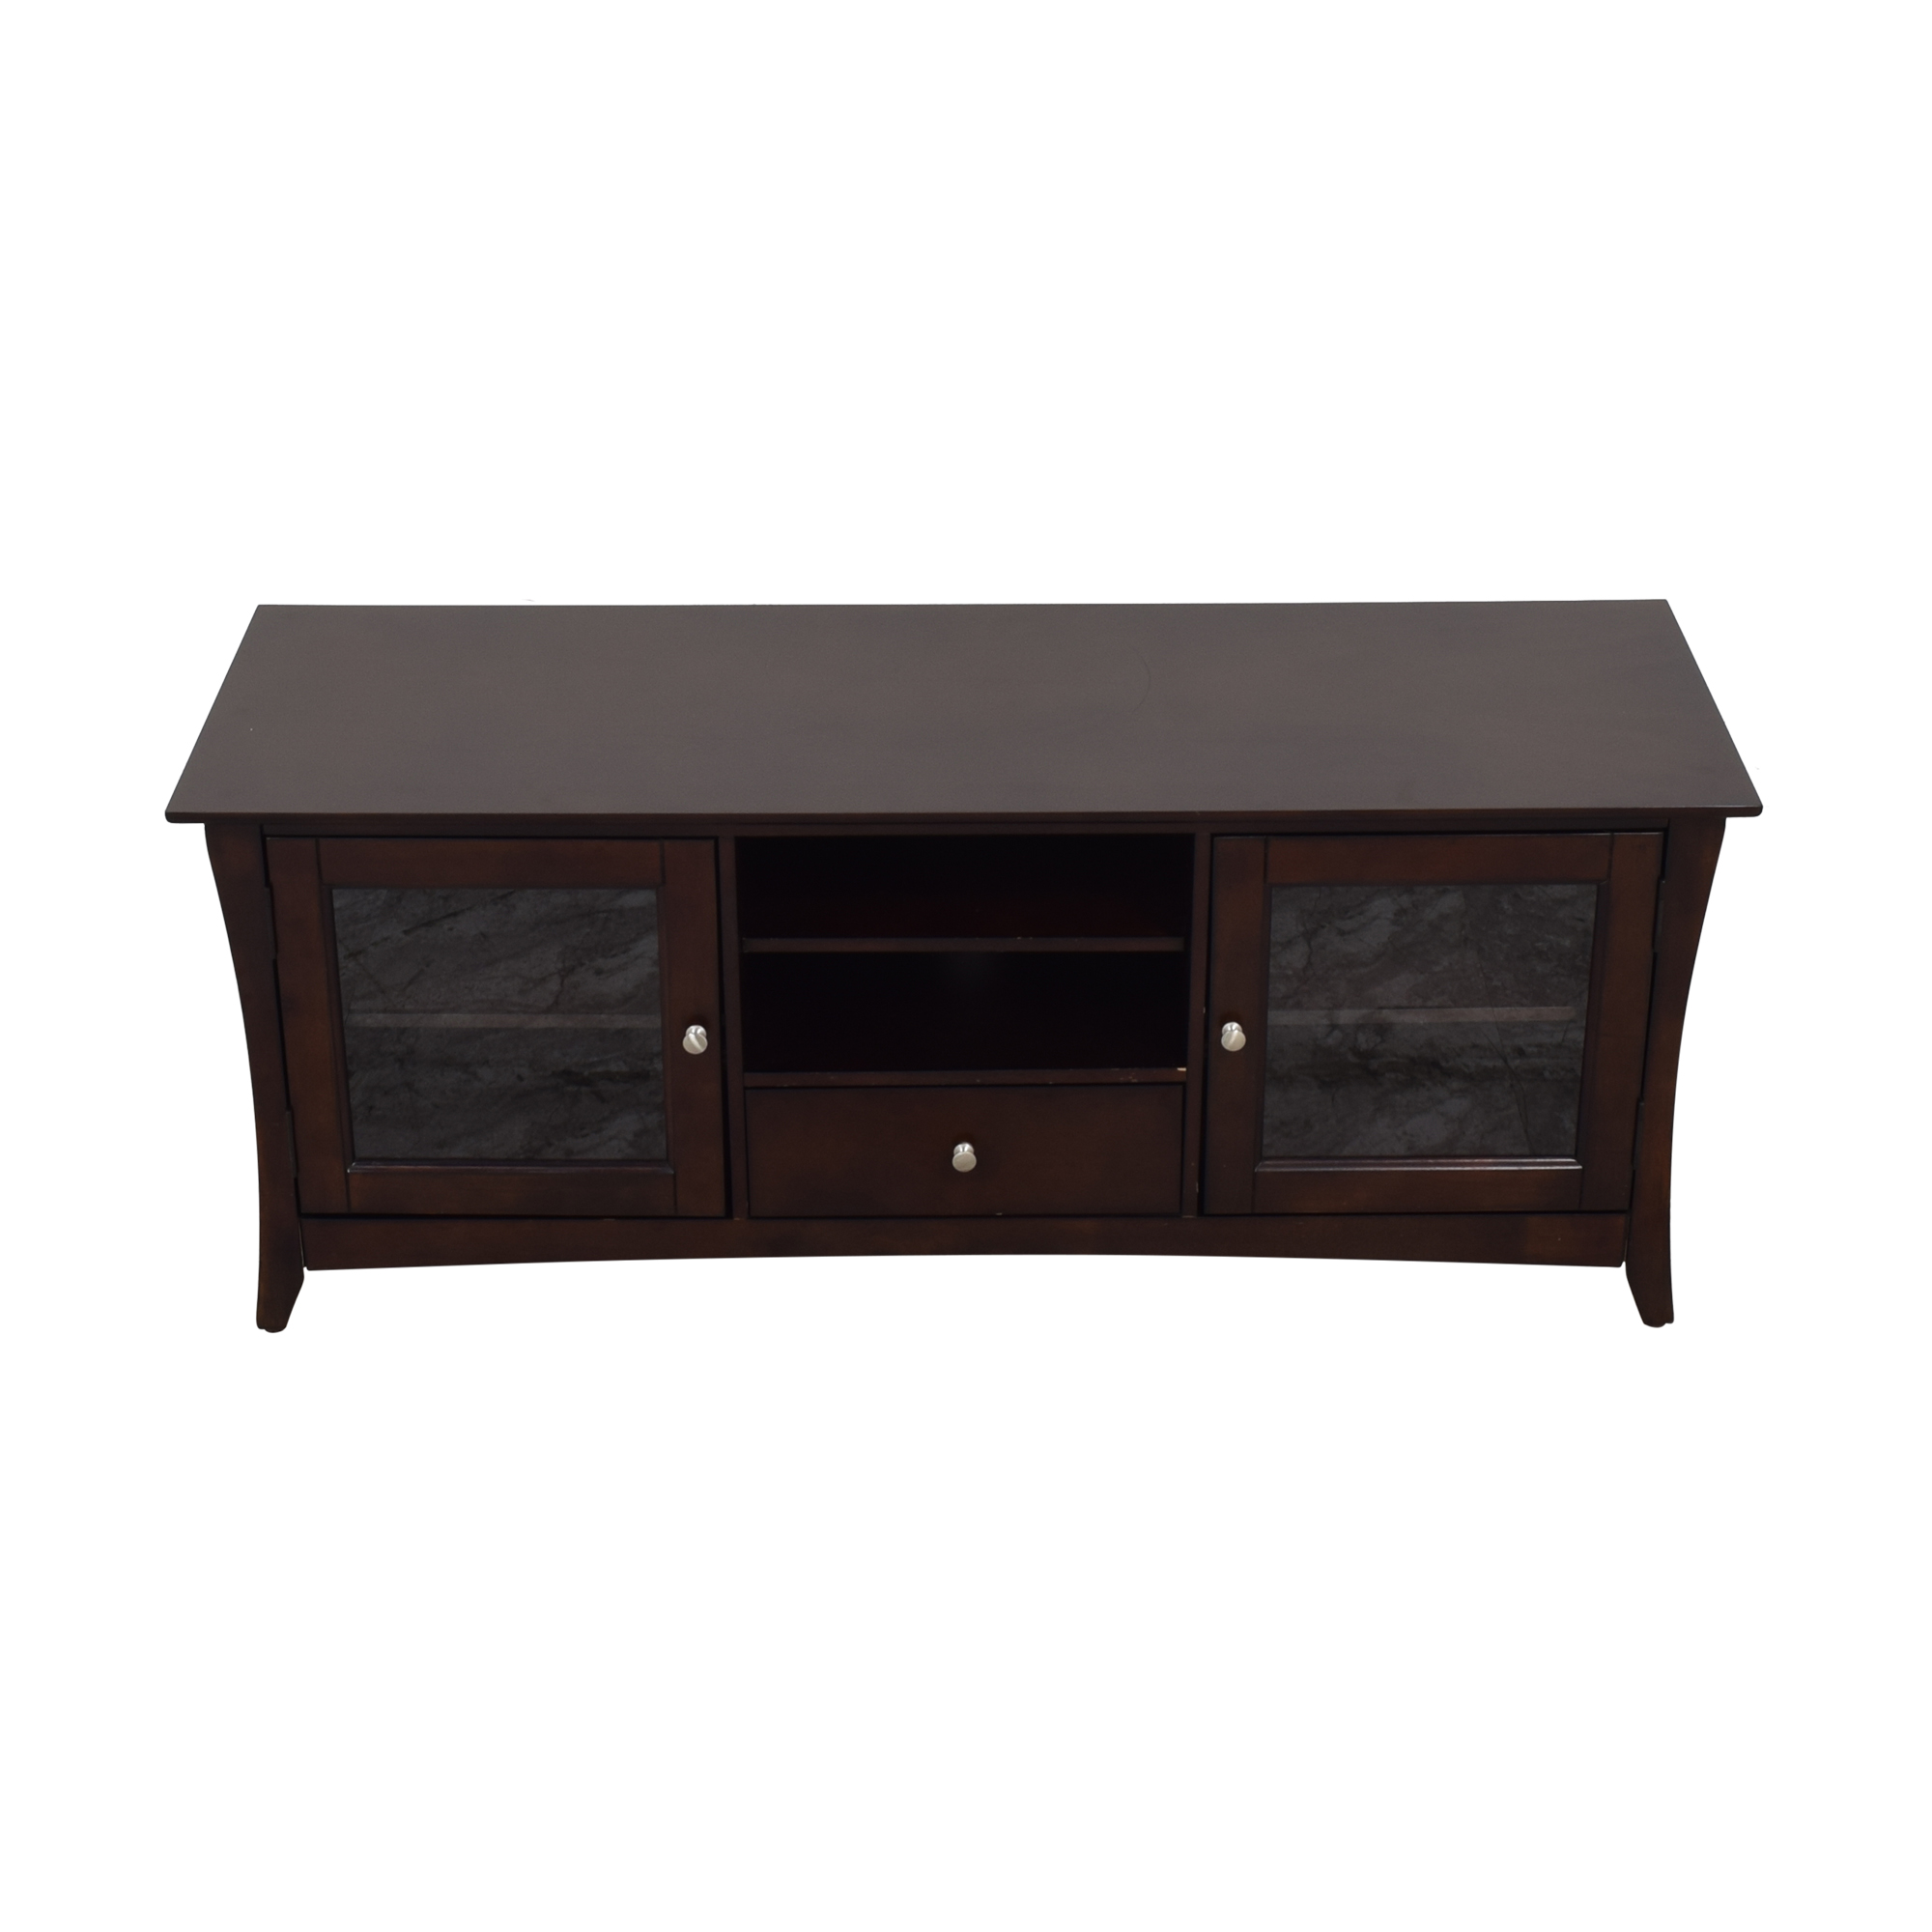 Homelegance Furniture Homelegance Borgeois TV Stand dimensions